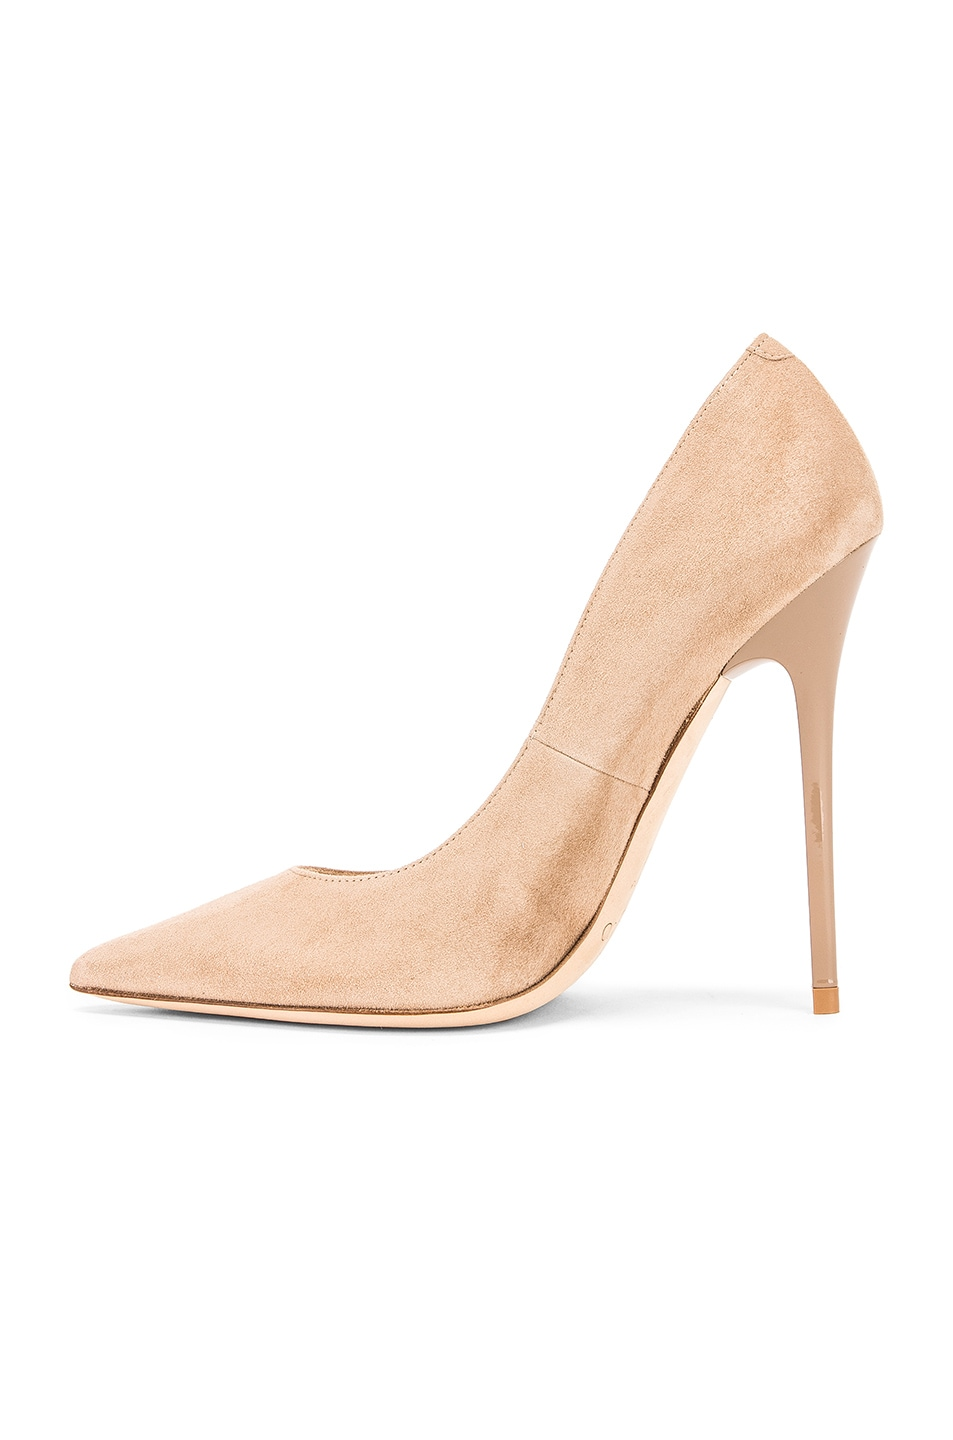 Image 5 of Jimmy Choo Anouk 120 Suede Pumps in Nude